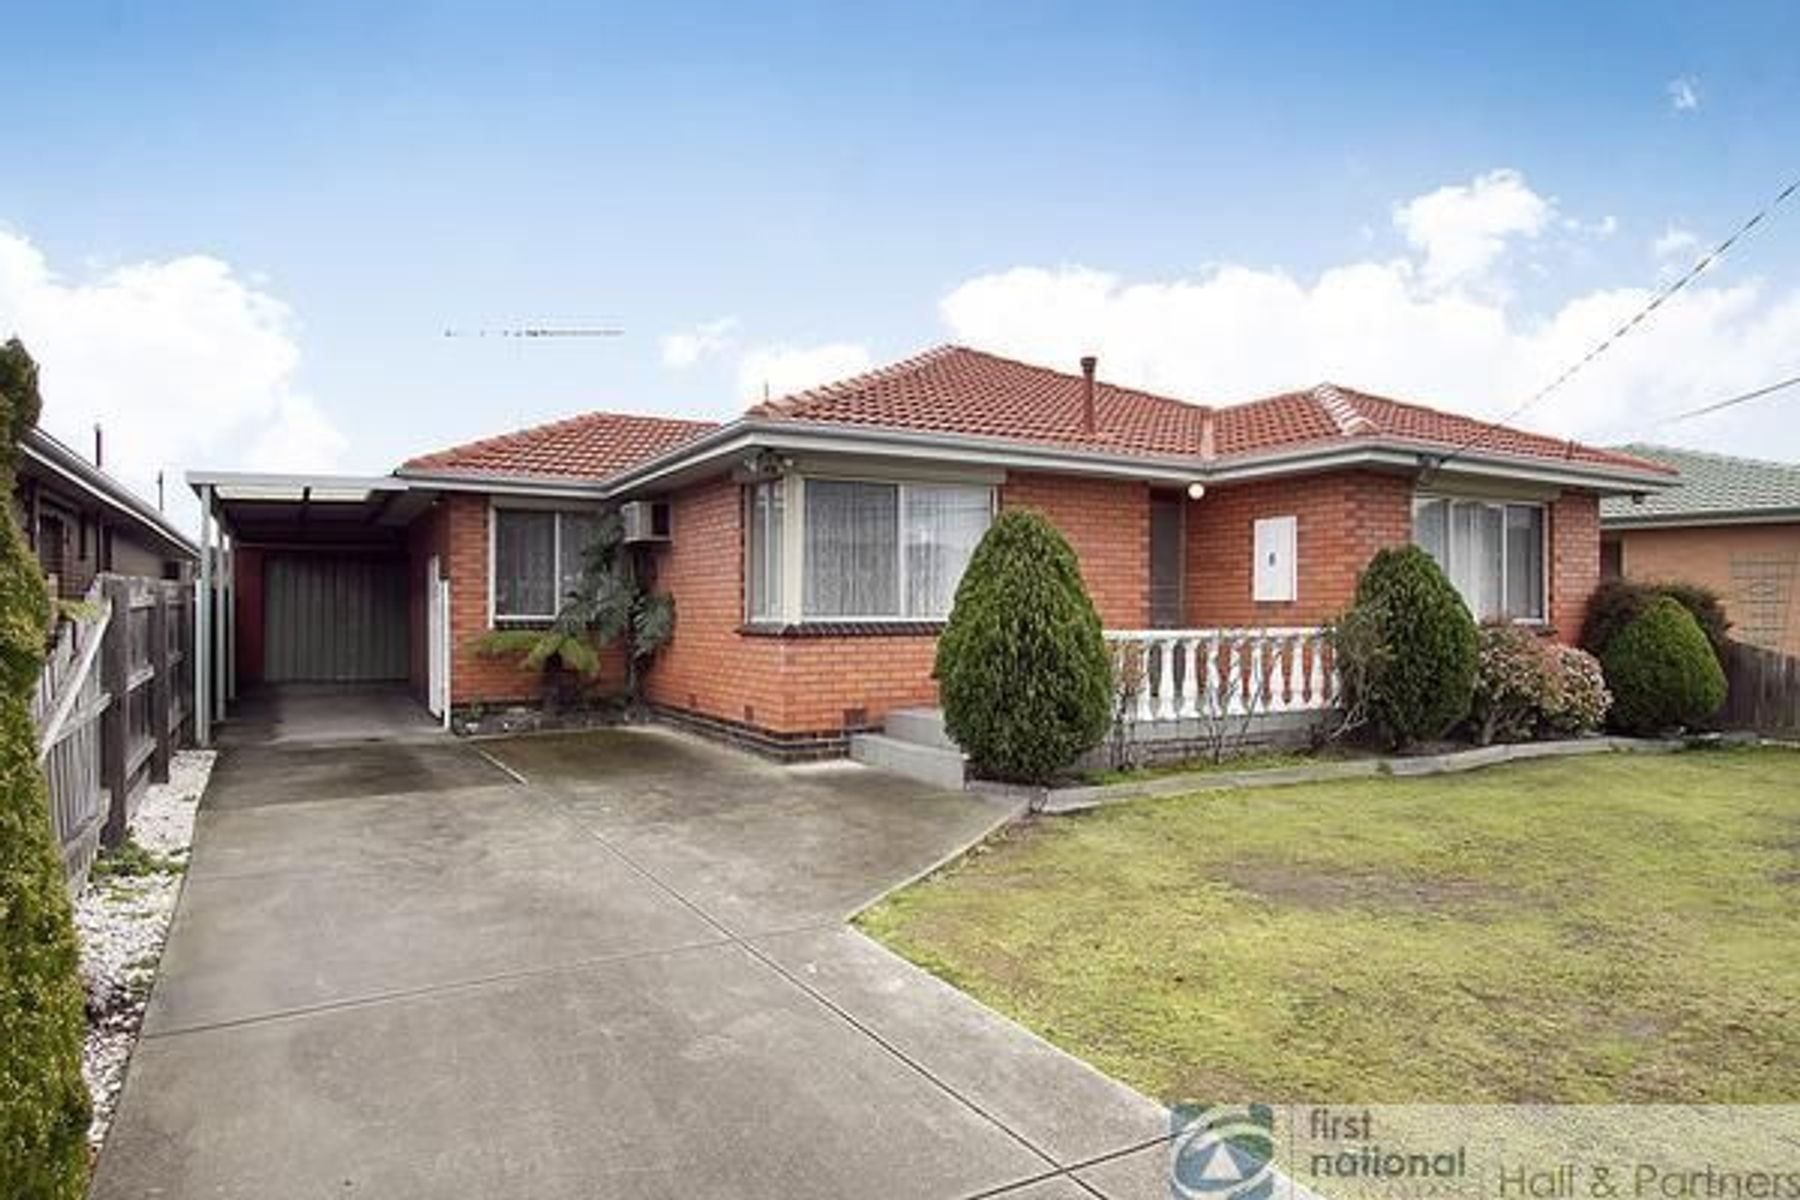 8 Jillian Street, Dandenong North, VIC 3175